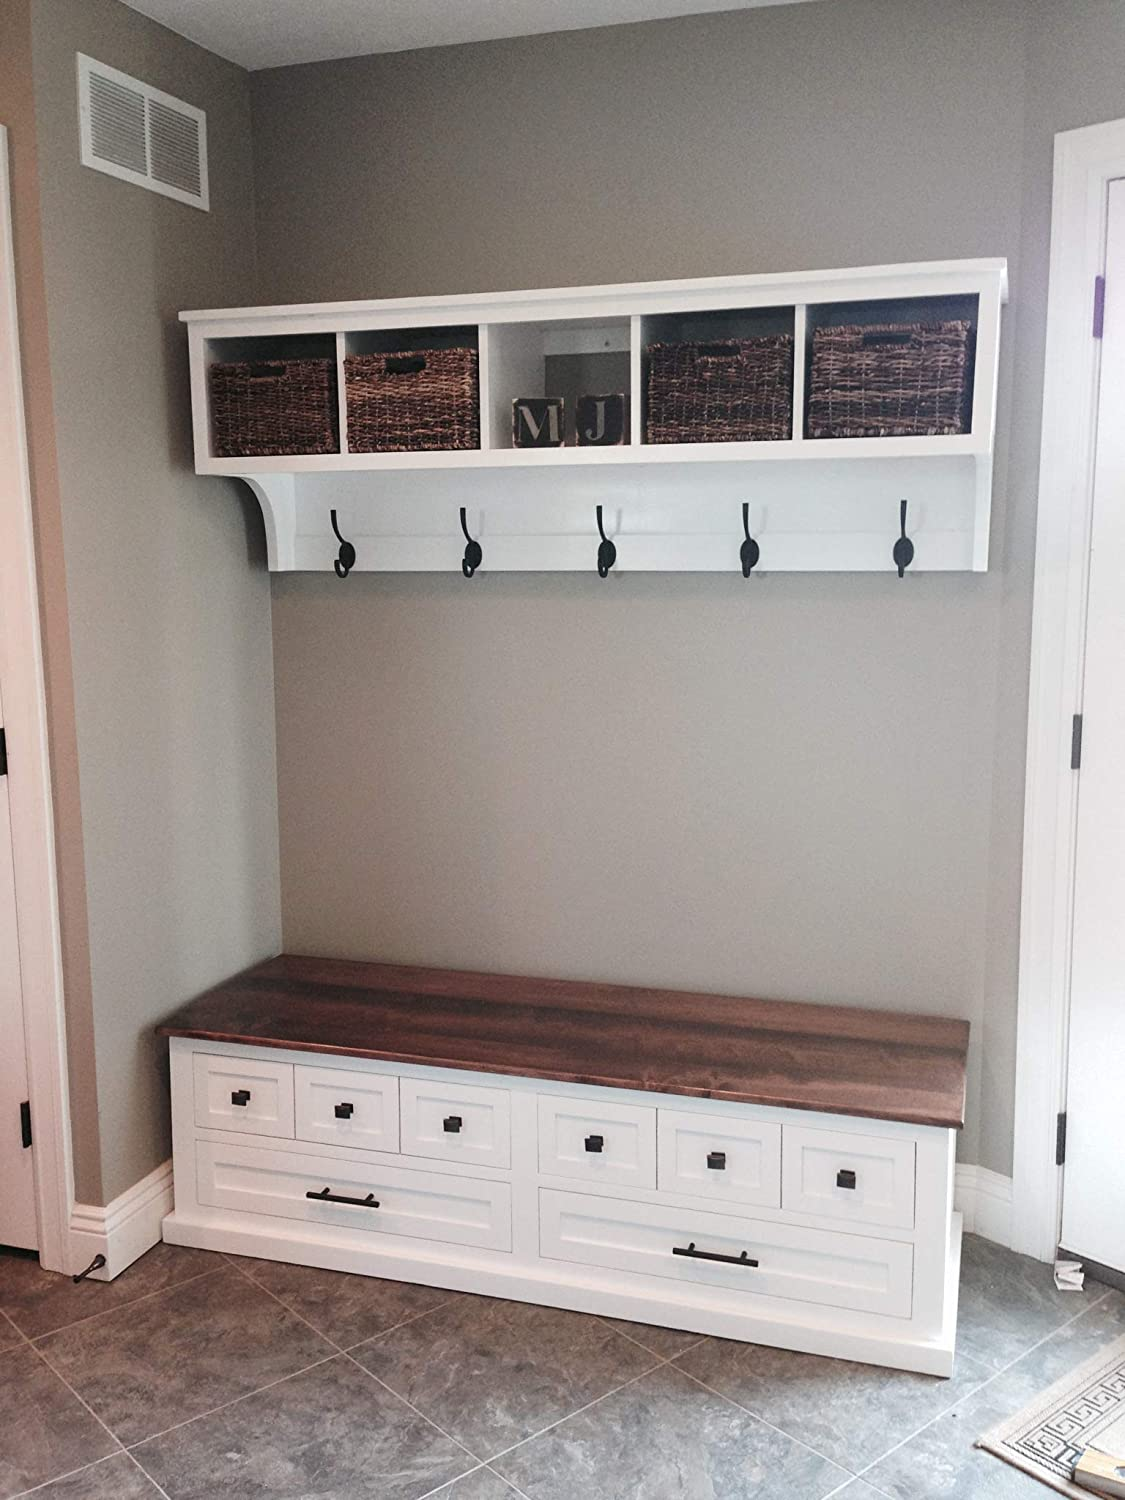 Amazon.com: Entryway Cubby and Bench, Wall Storage Cubical with